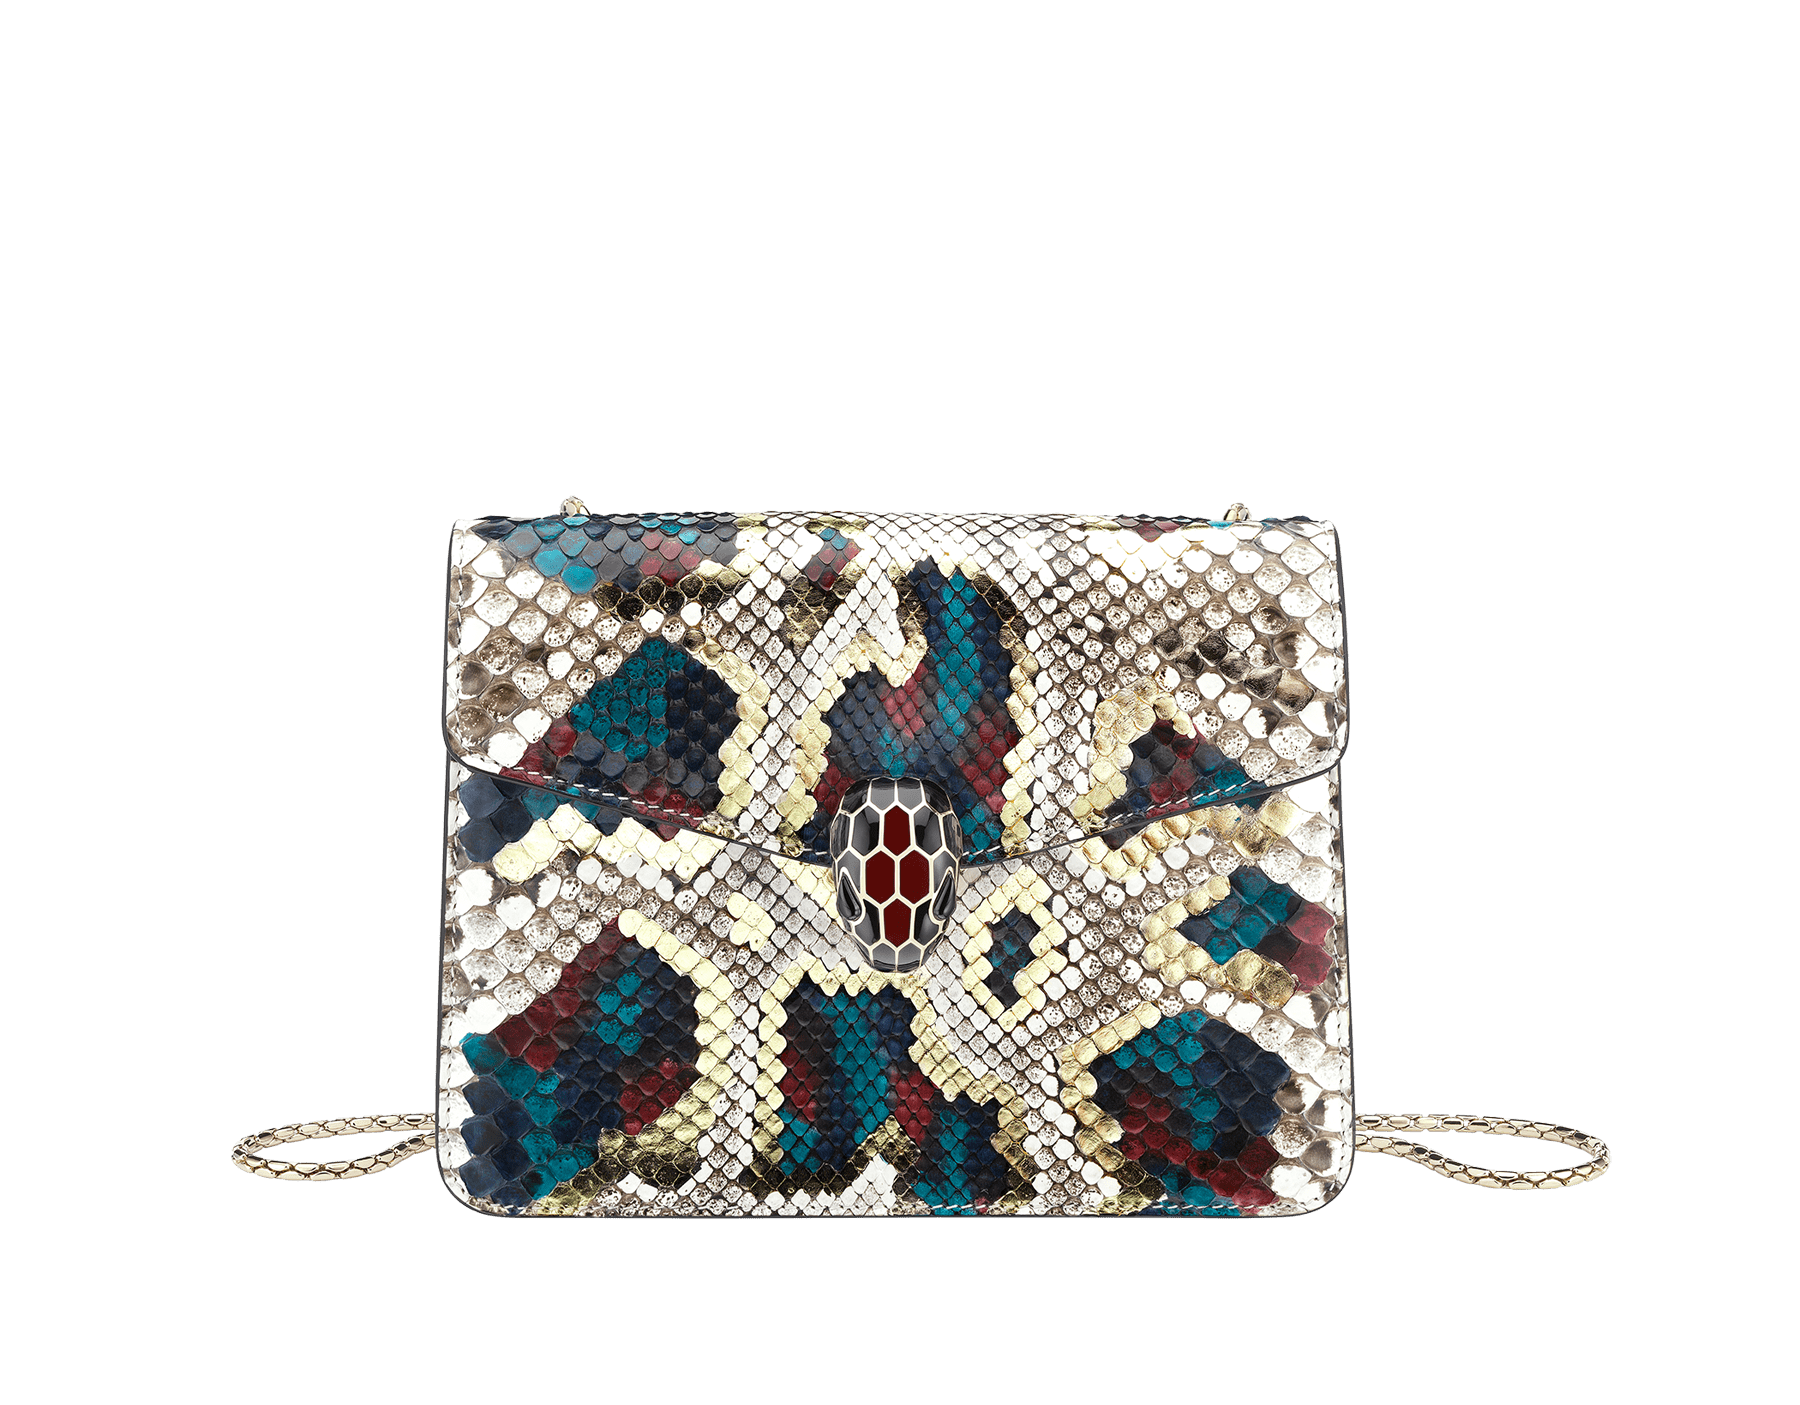 Sac à bandoulière Serpenti Forever en python « Magic Chromaline » multicolore. Fermoir emblématique Serpenti en laiton doré et émail noir et blanc avec yeux en onyx. 422-Pc image 1